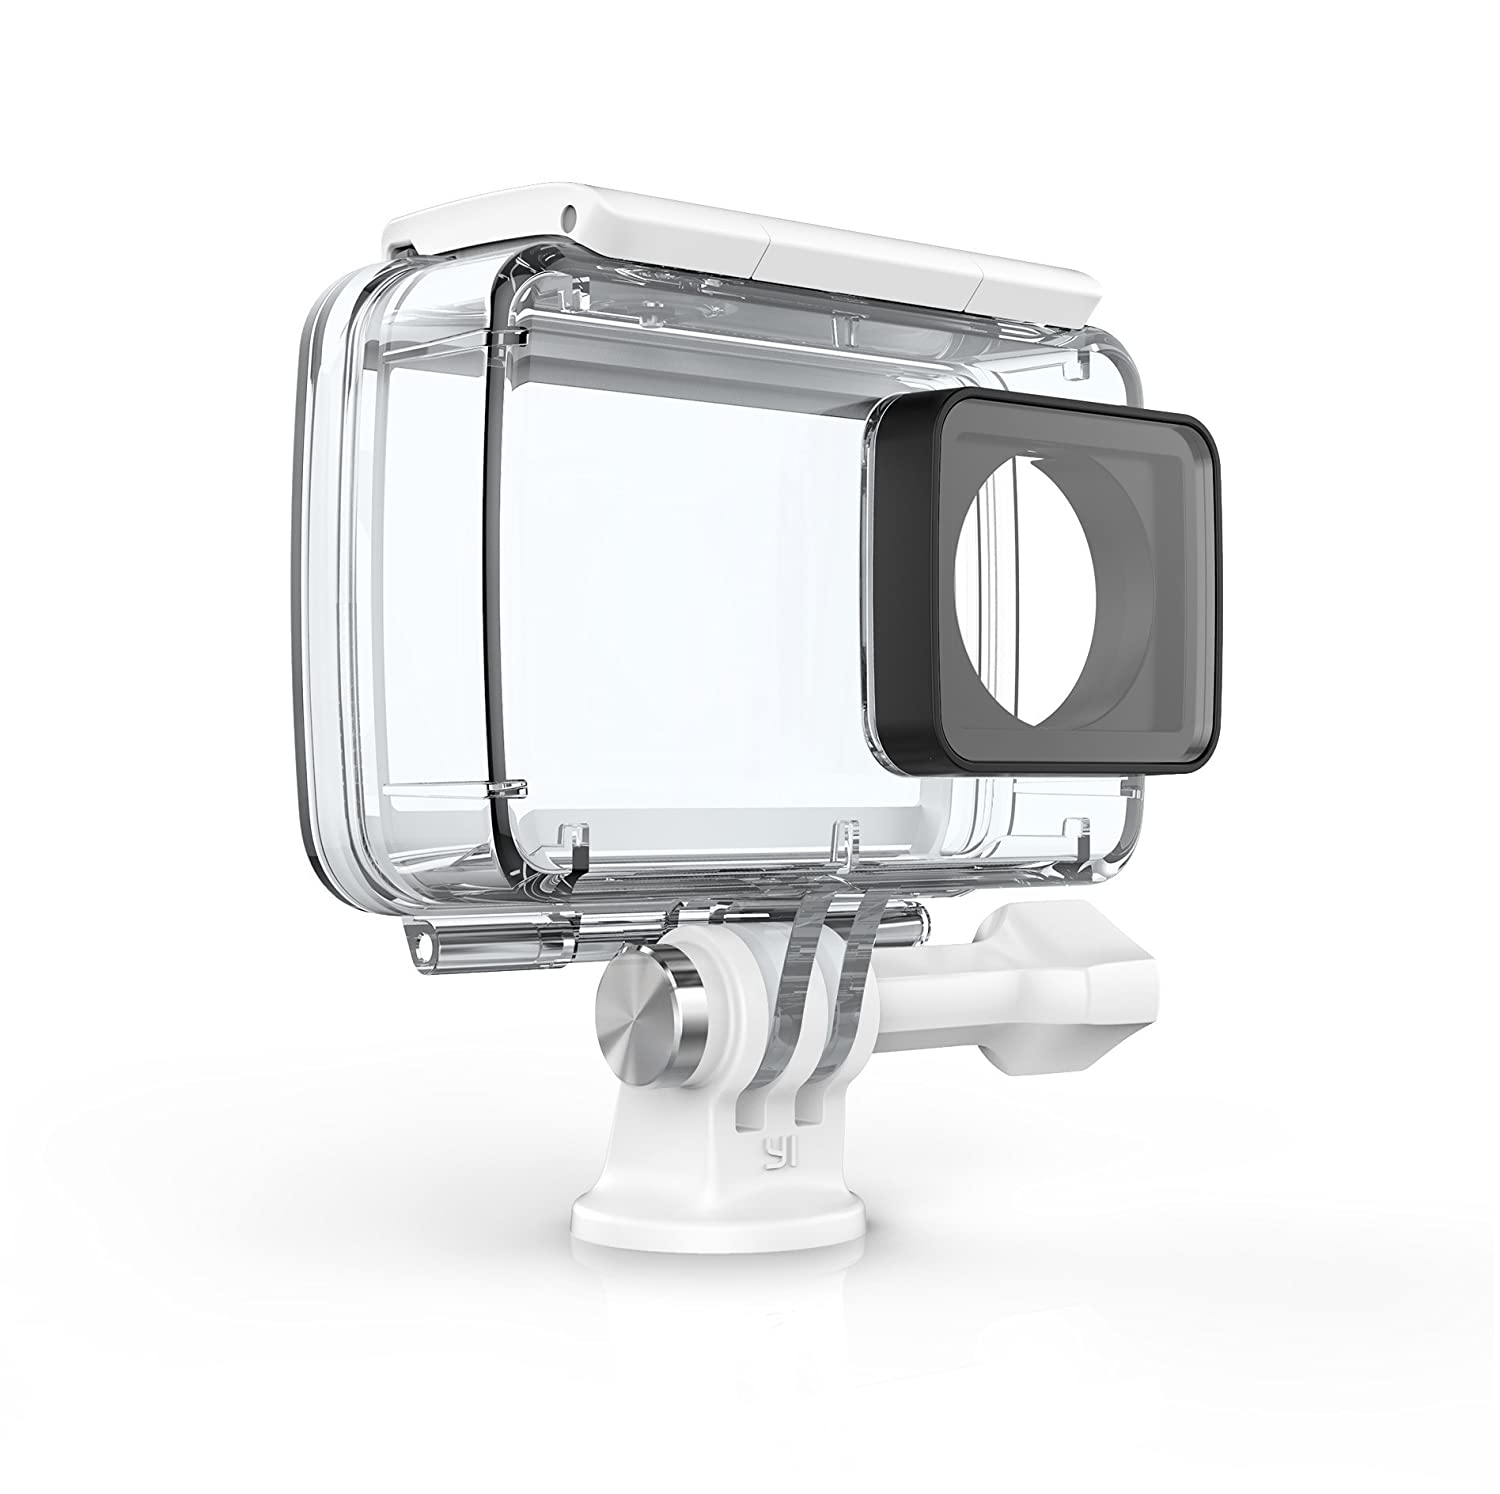 YI 4K/4K+ Action Camera Waterproof Case